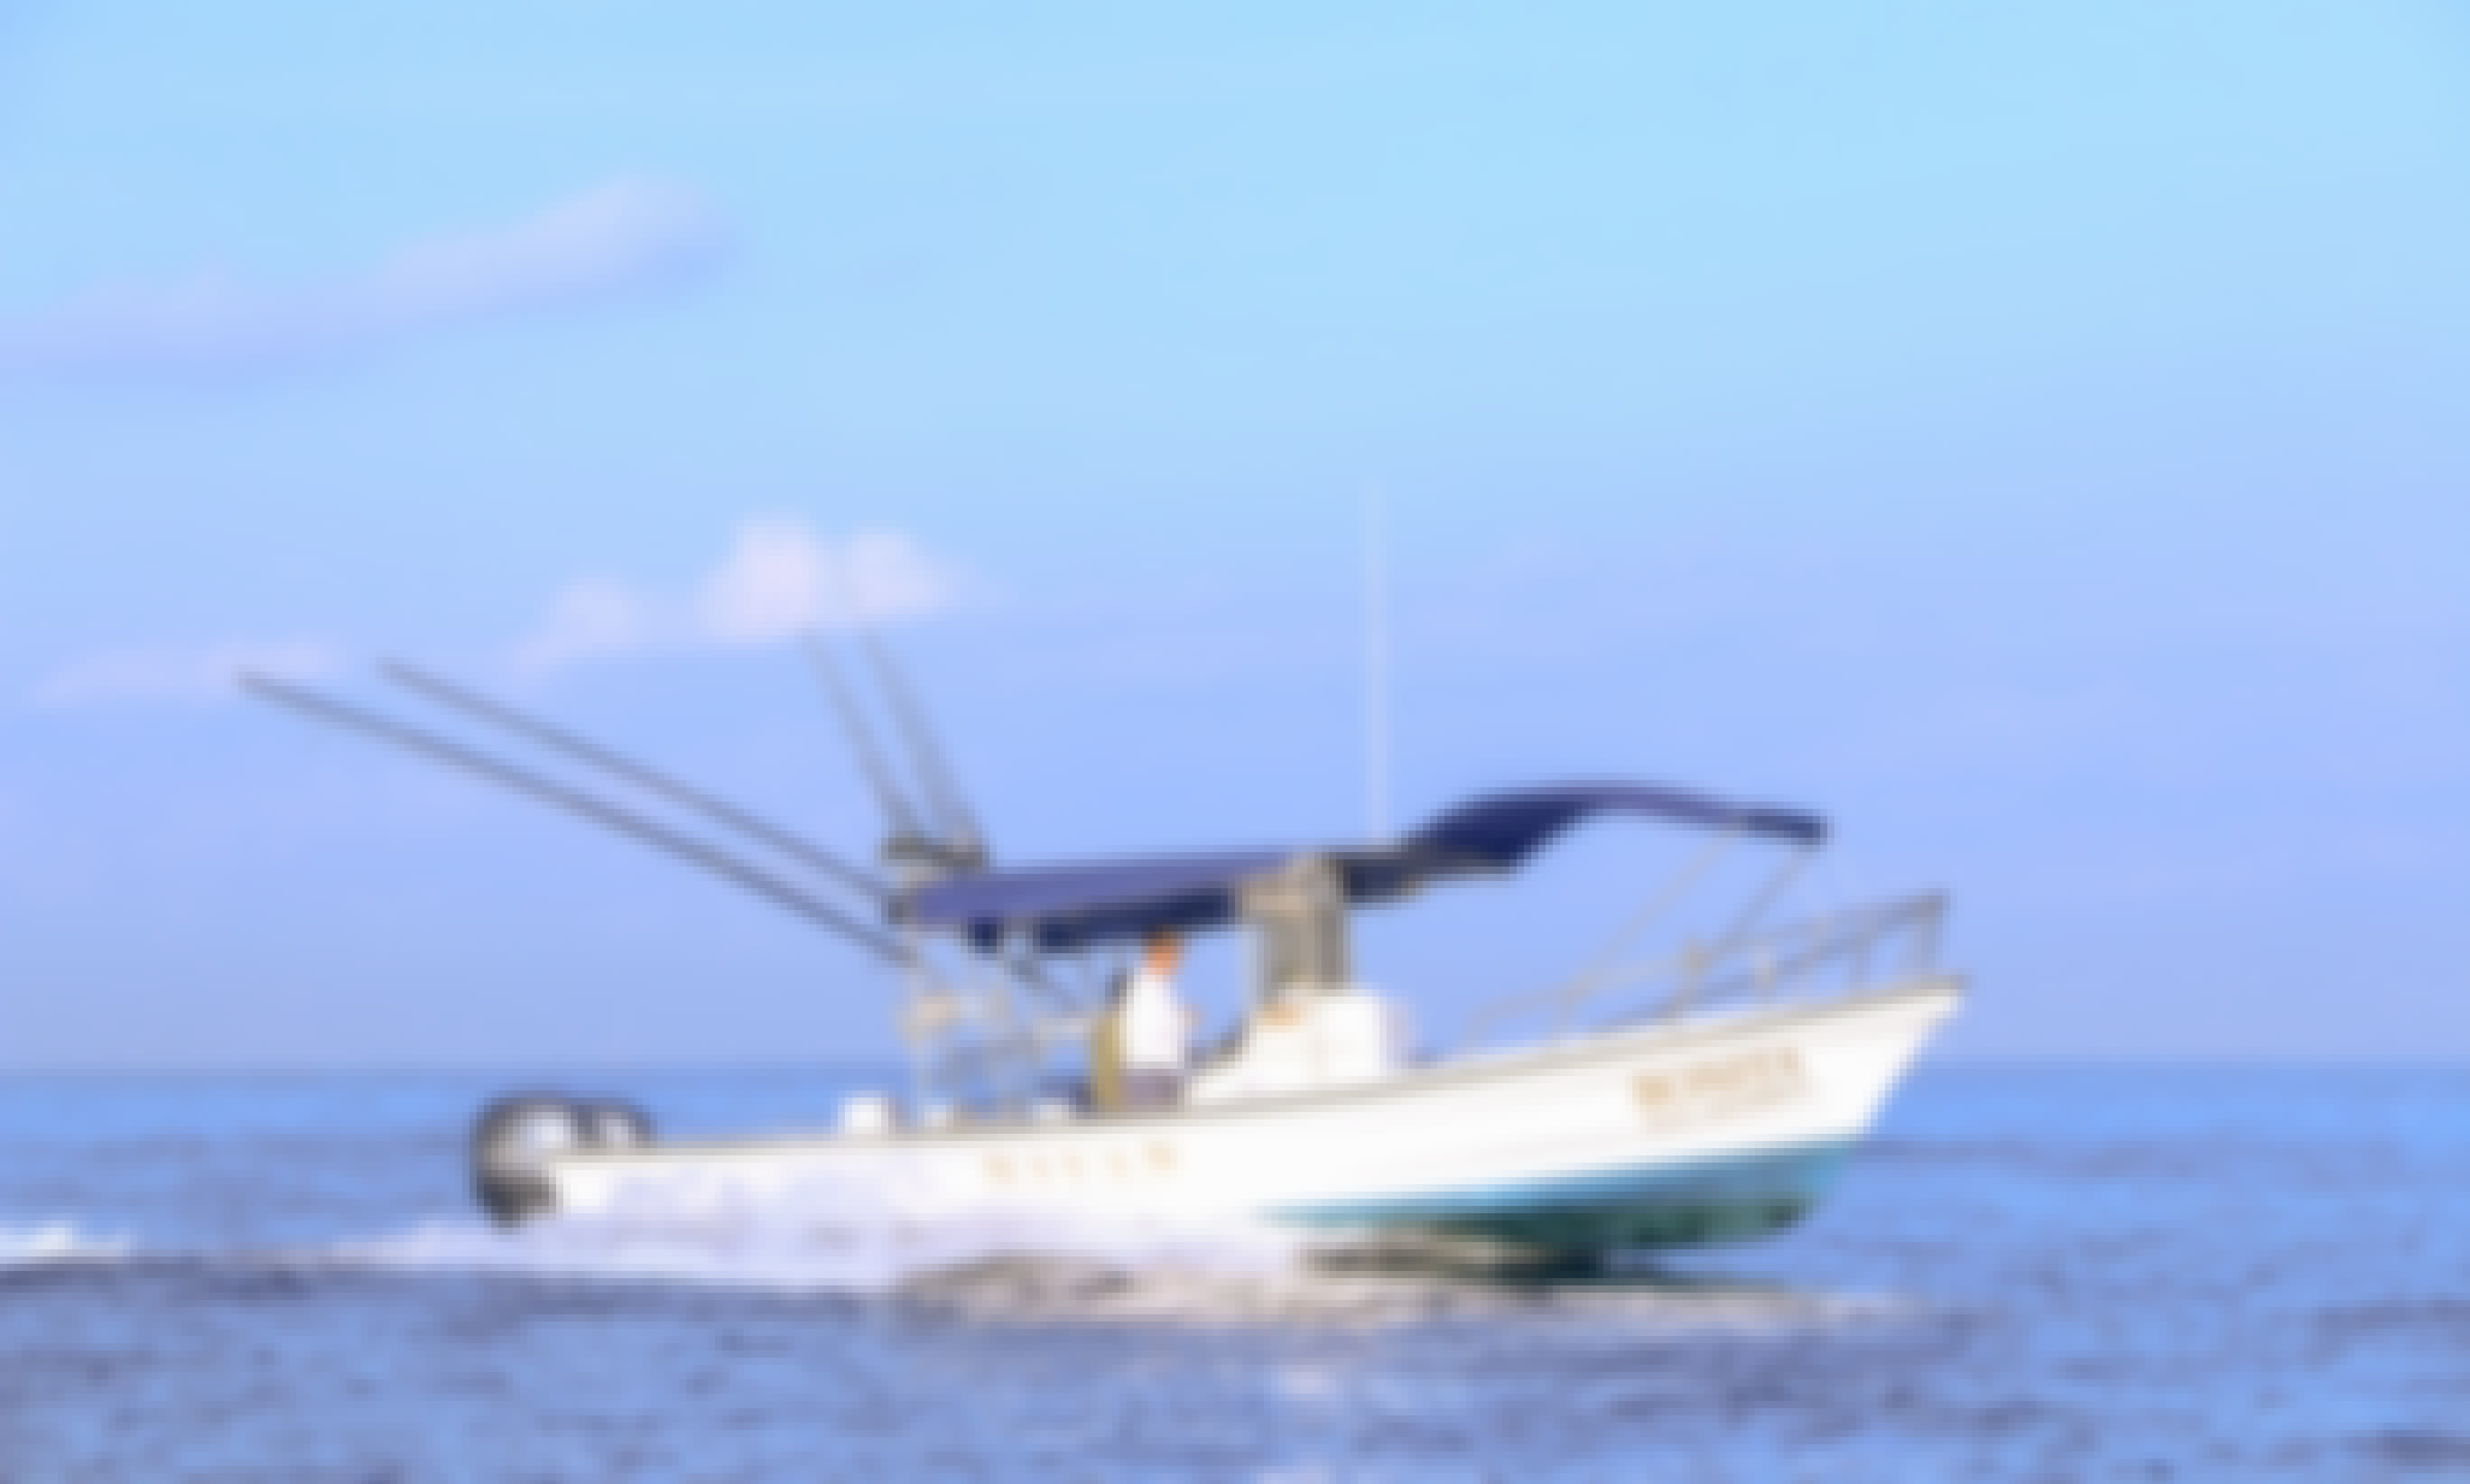 Fishing Boat Charter for 4 People in Puerto Vallarta, Mexico